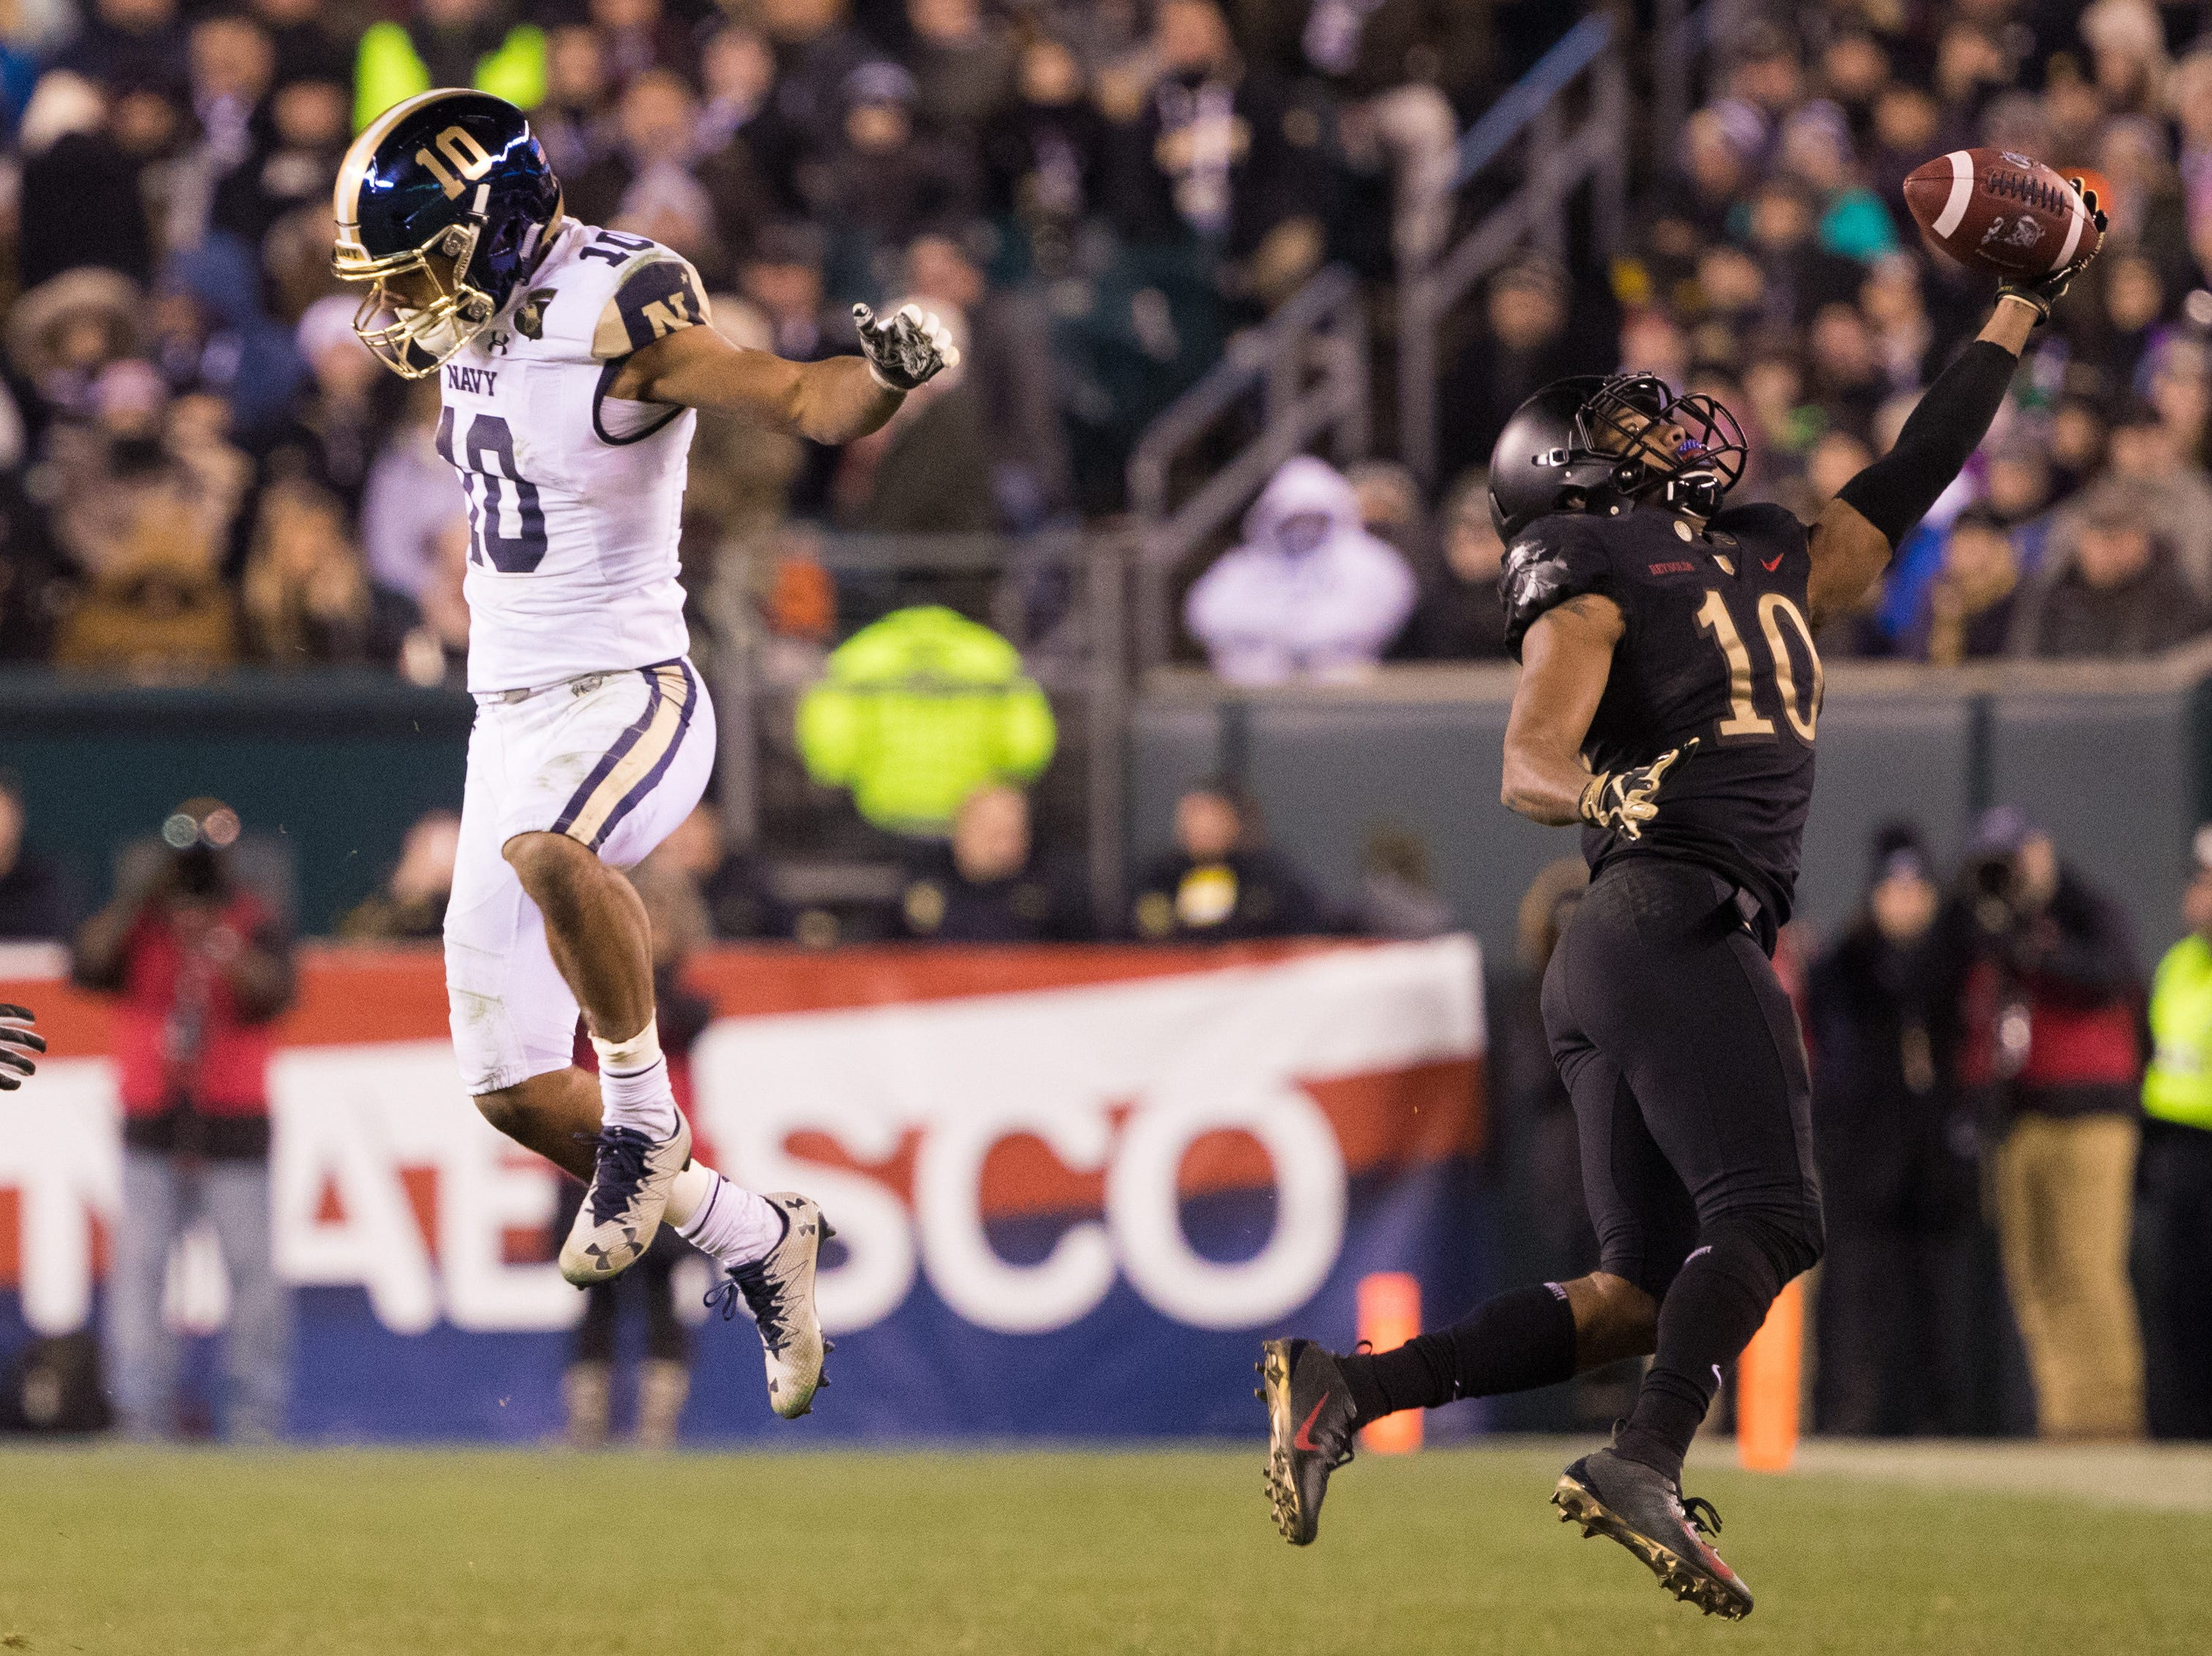 Army Black Knights defensive back Mike Reynolds (10) intercepts the ball in front of Navy Midshipmen quarterback Malcolm Perry (10) during the third quarter at Lincoln Financial Field.